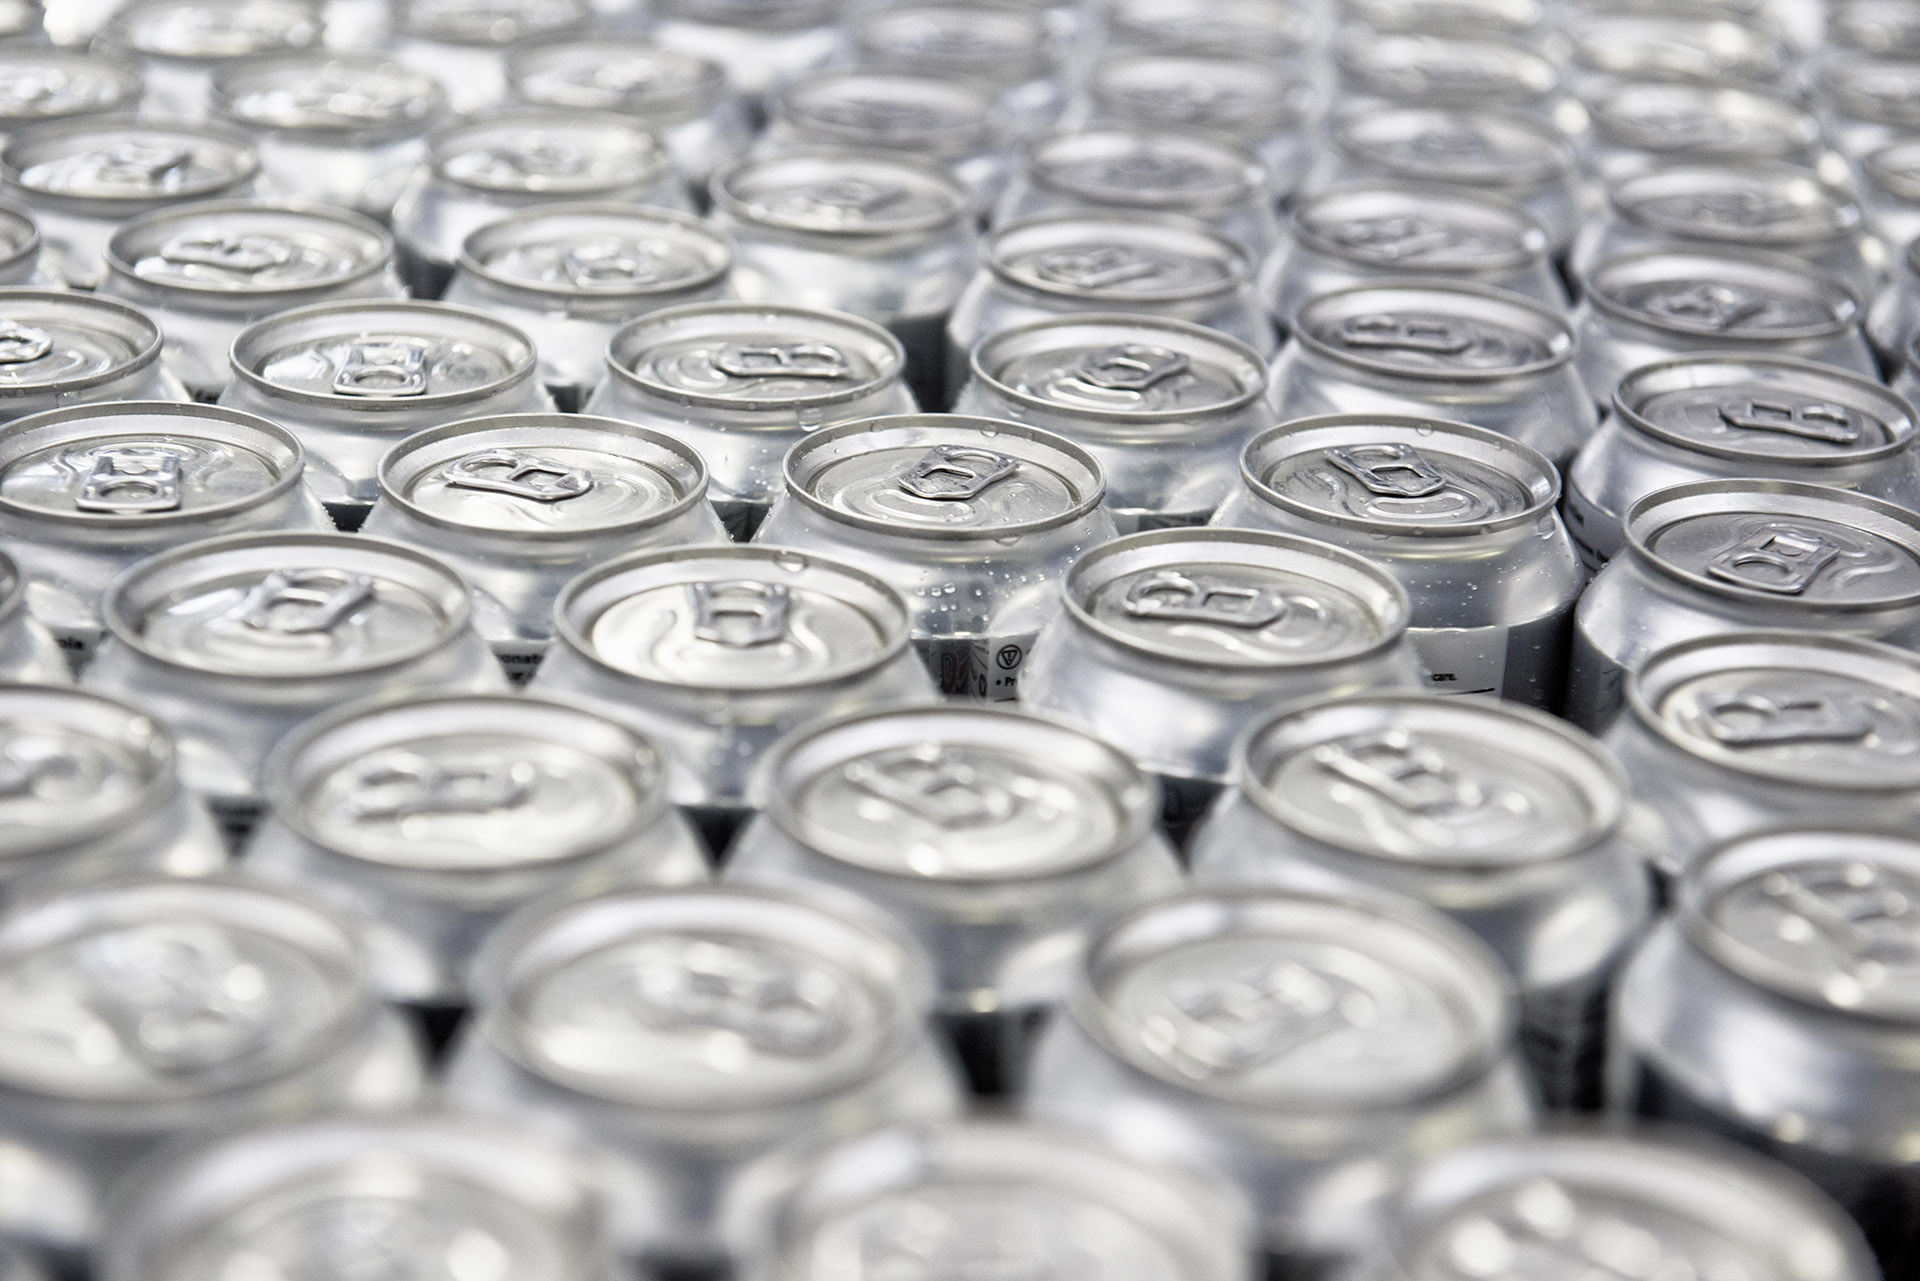 Photograph of Cans Product Photography at Princess Food Processing Factory industrial photography by Jon Parker Lee UK